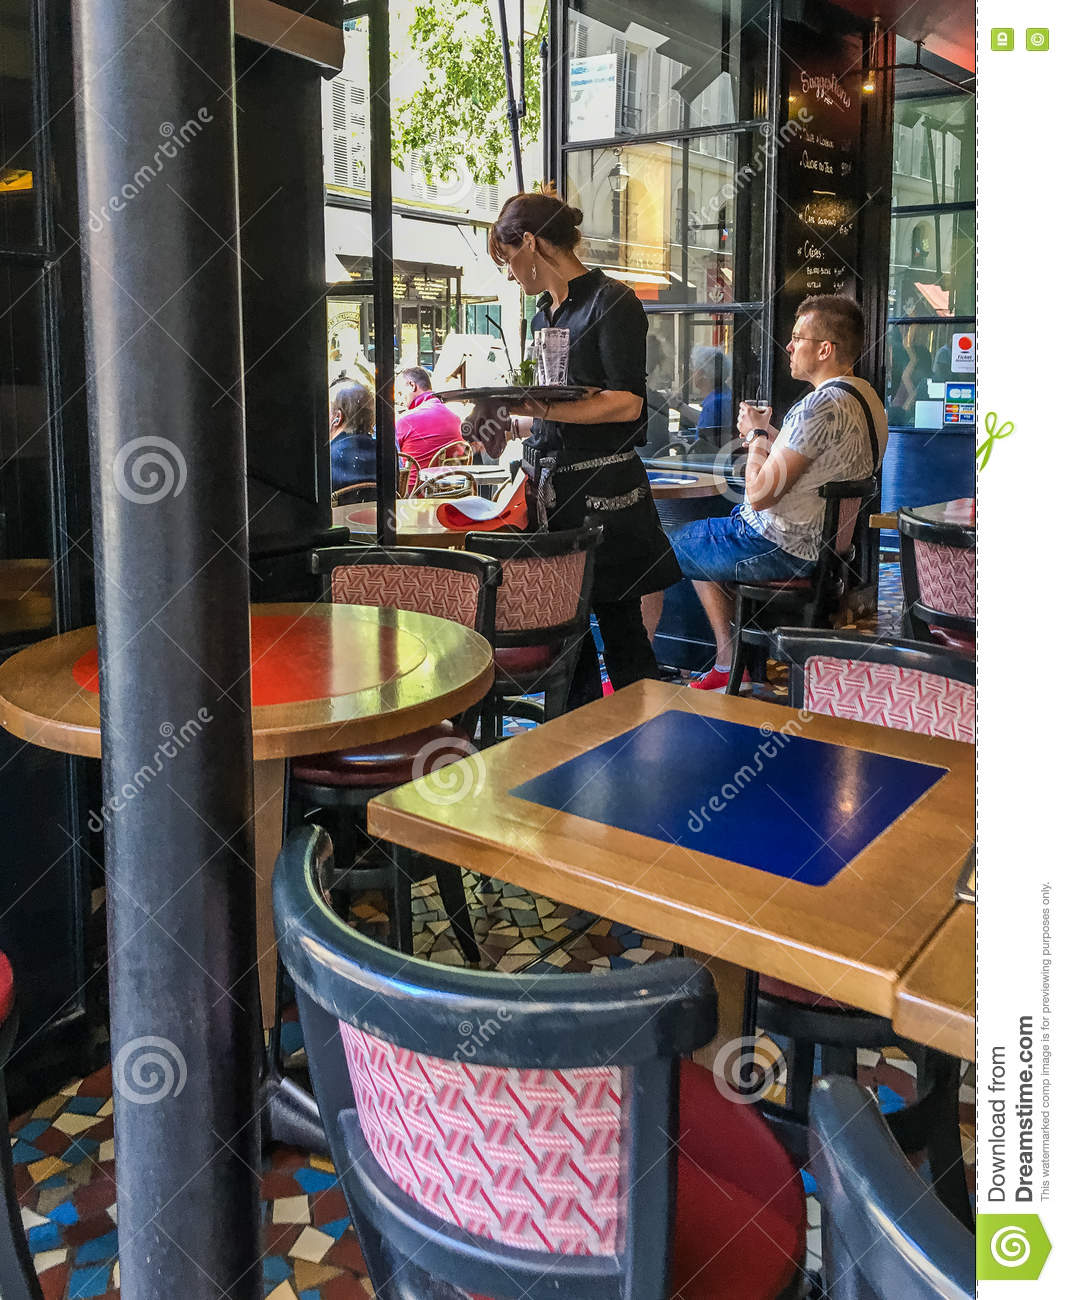 Woman Waiter Clears Paris Cafe Table Editorial Image Image Of - Paris cafe table